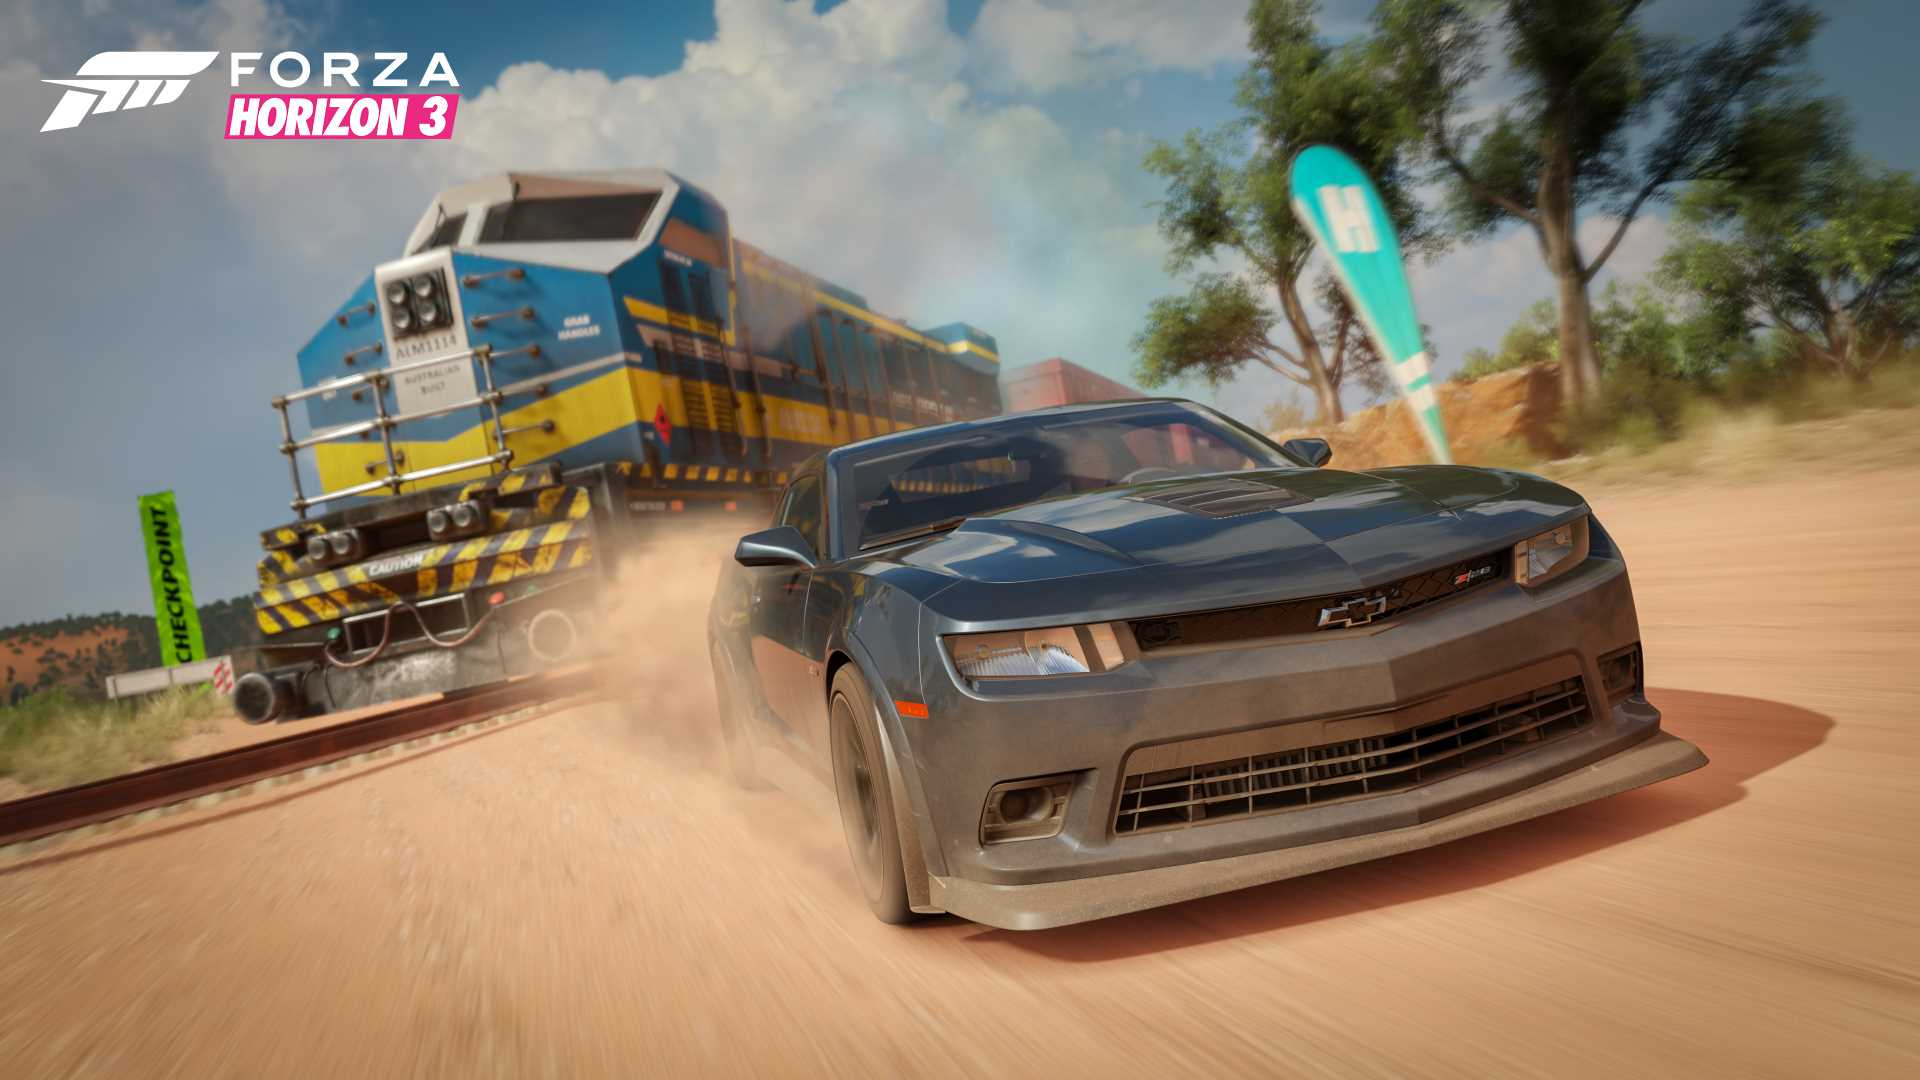 Forza Horizon 3 xbox one review